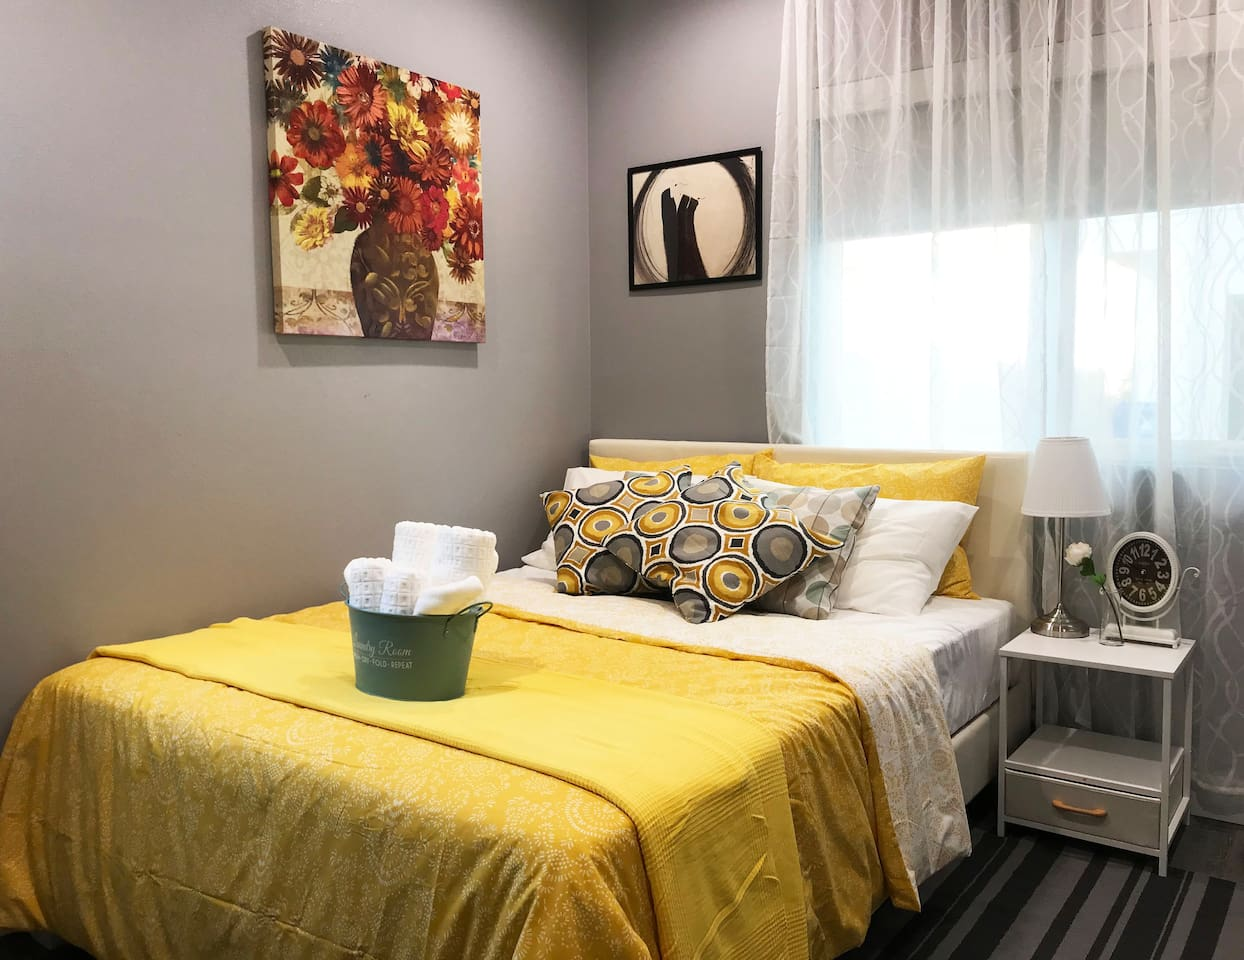 Room#1 Beautiful, super clean, and everything brand new! New constructed home and all new furniture and appliances!